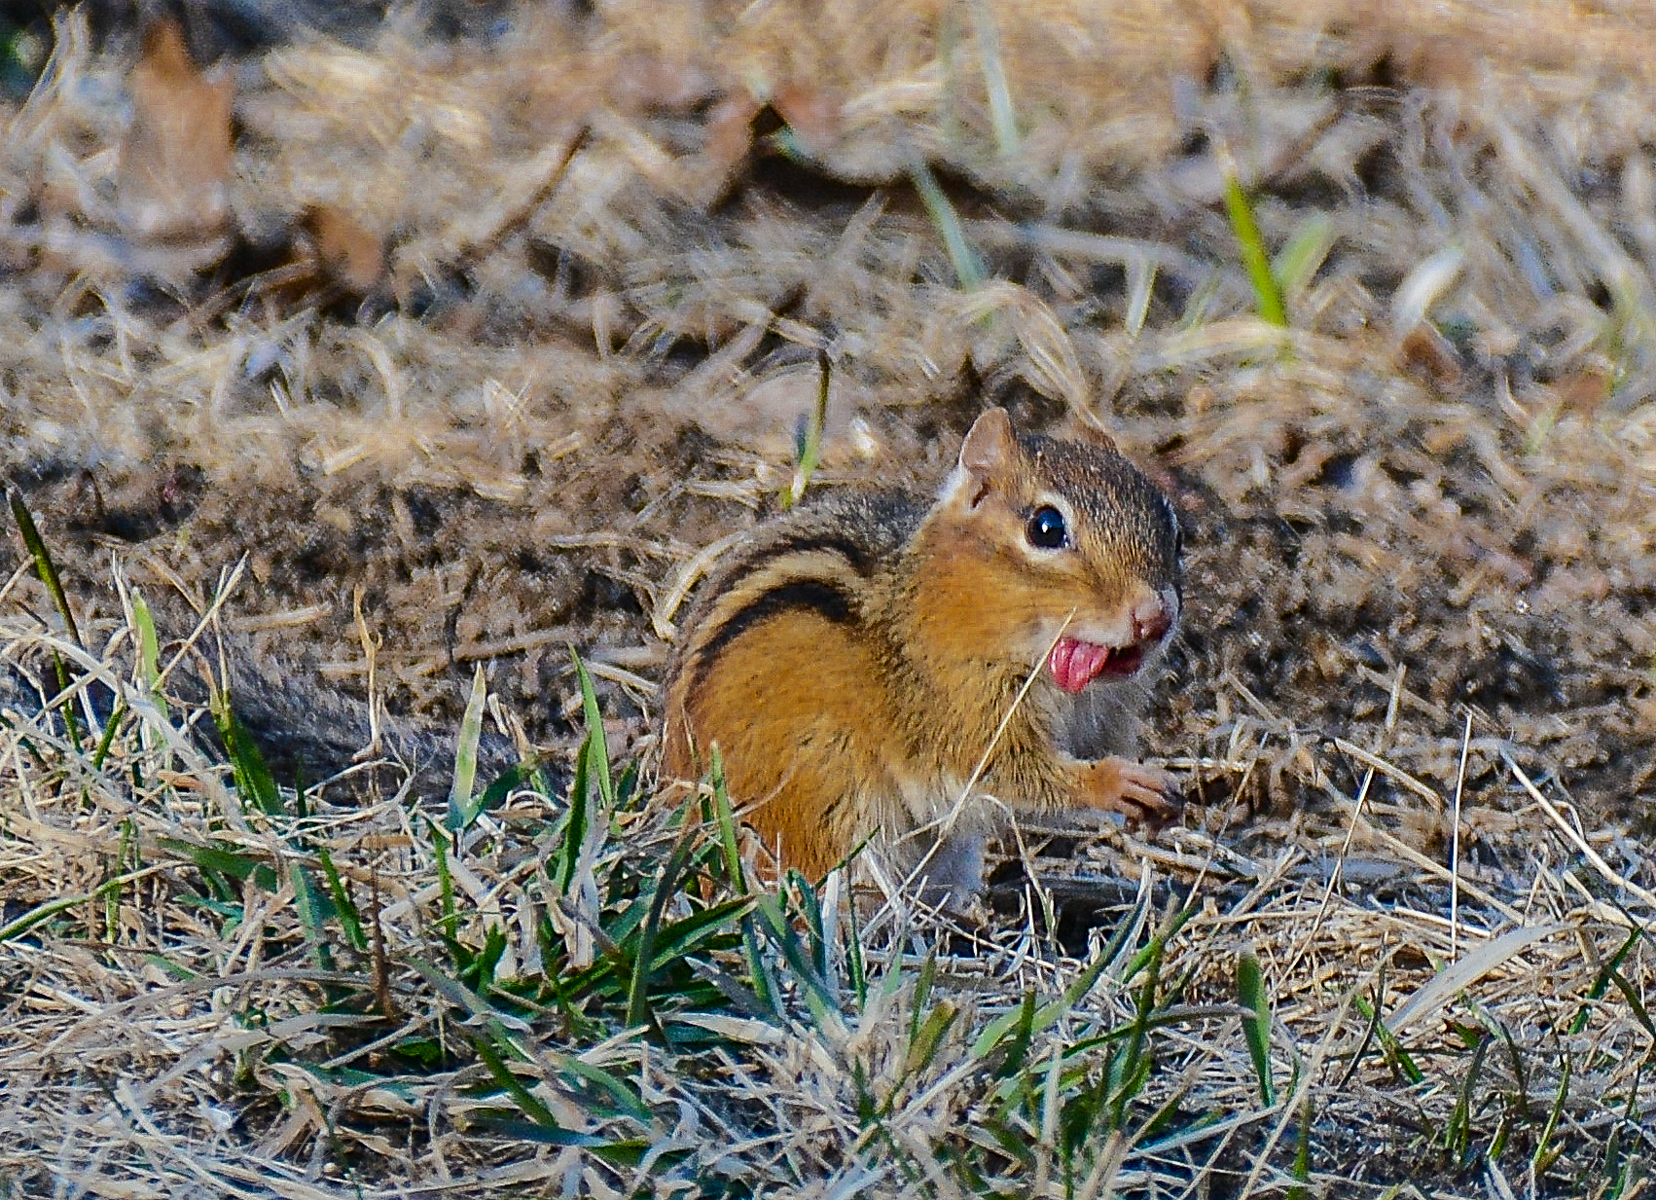 Chipmunks are coming out of their burrows and grabbing anything they can for food.